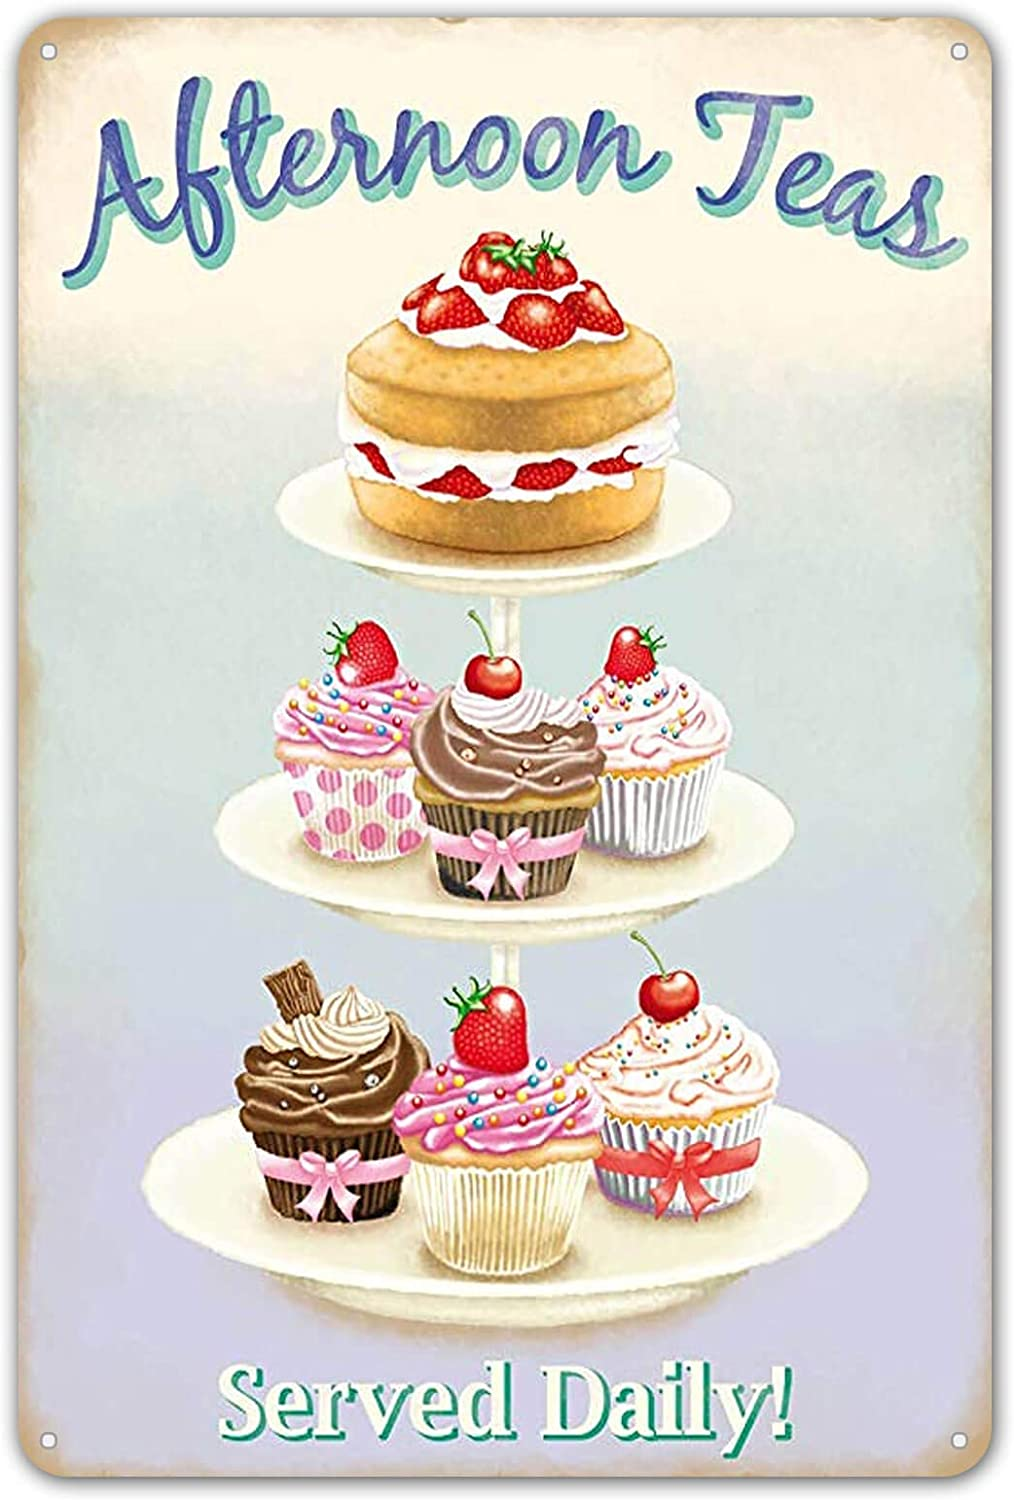 ZYPENG Afternoon Teas. Cake Stand. Food, Sponge Cake, Cupcakes, Retro Retro Vintage Tin Metal Sign Wall Decor Home Decor 8 x 12 inches